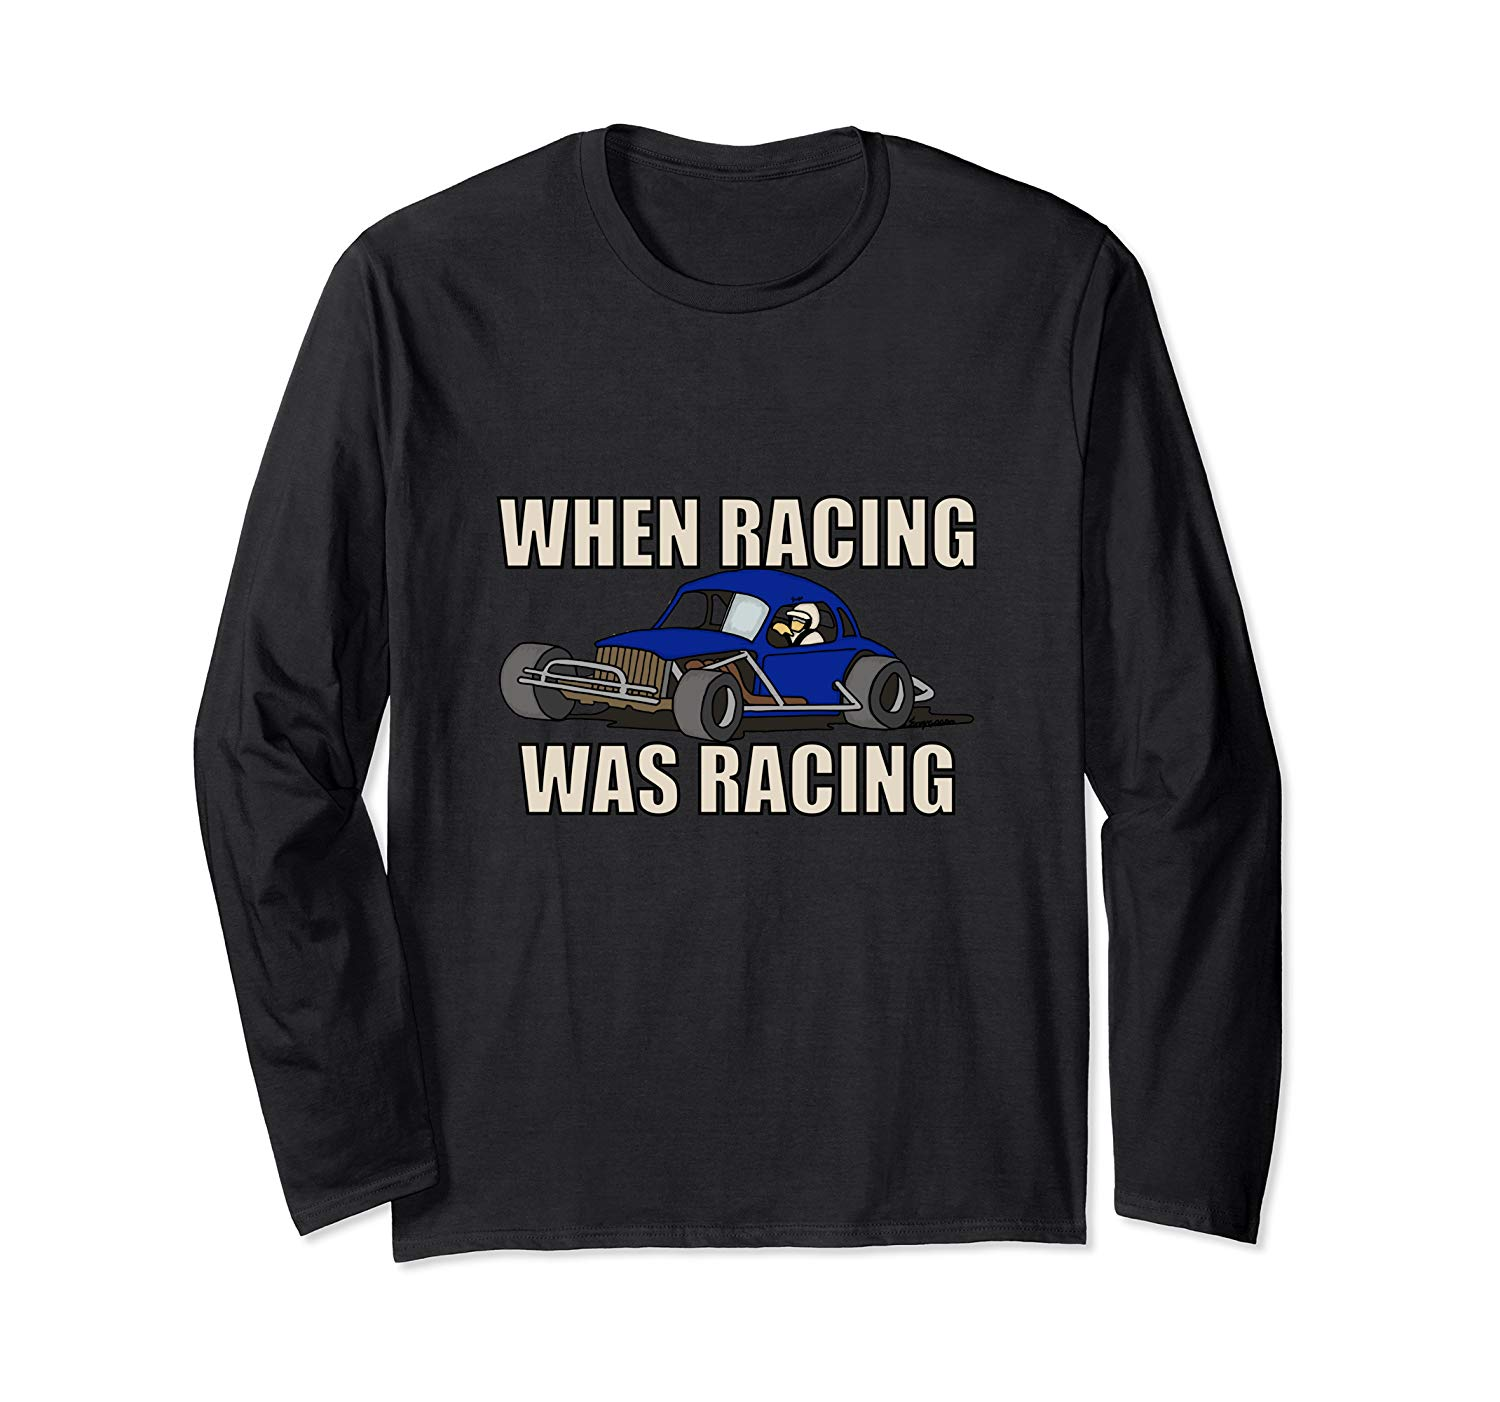 Stock Car Shirt RACING WAS RACING Blue Coupe racing gift long sleeve